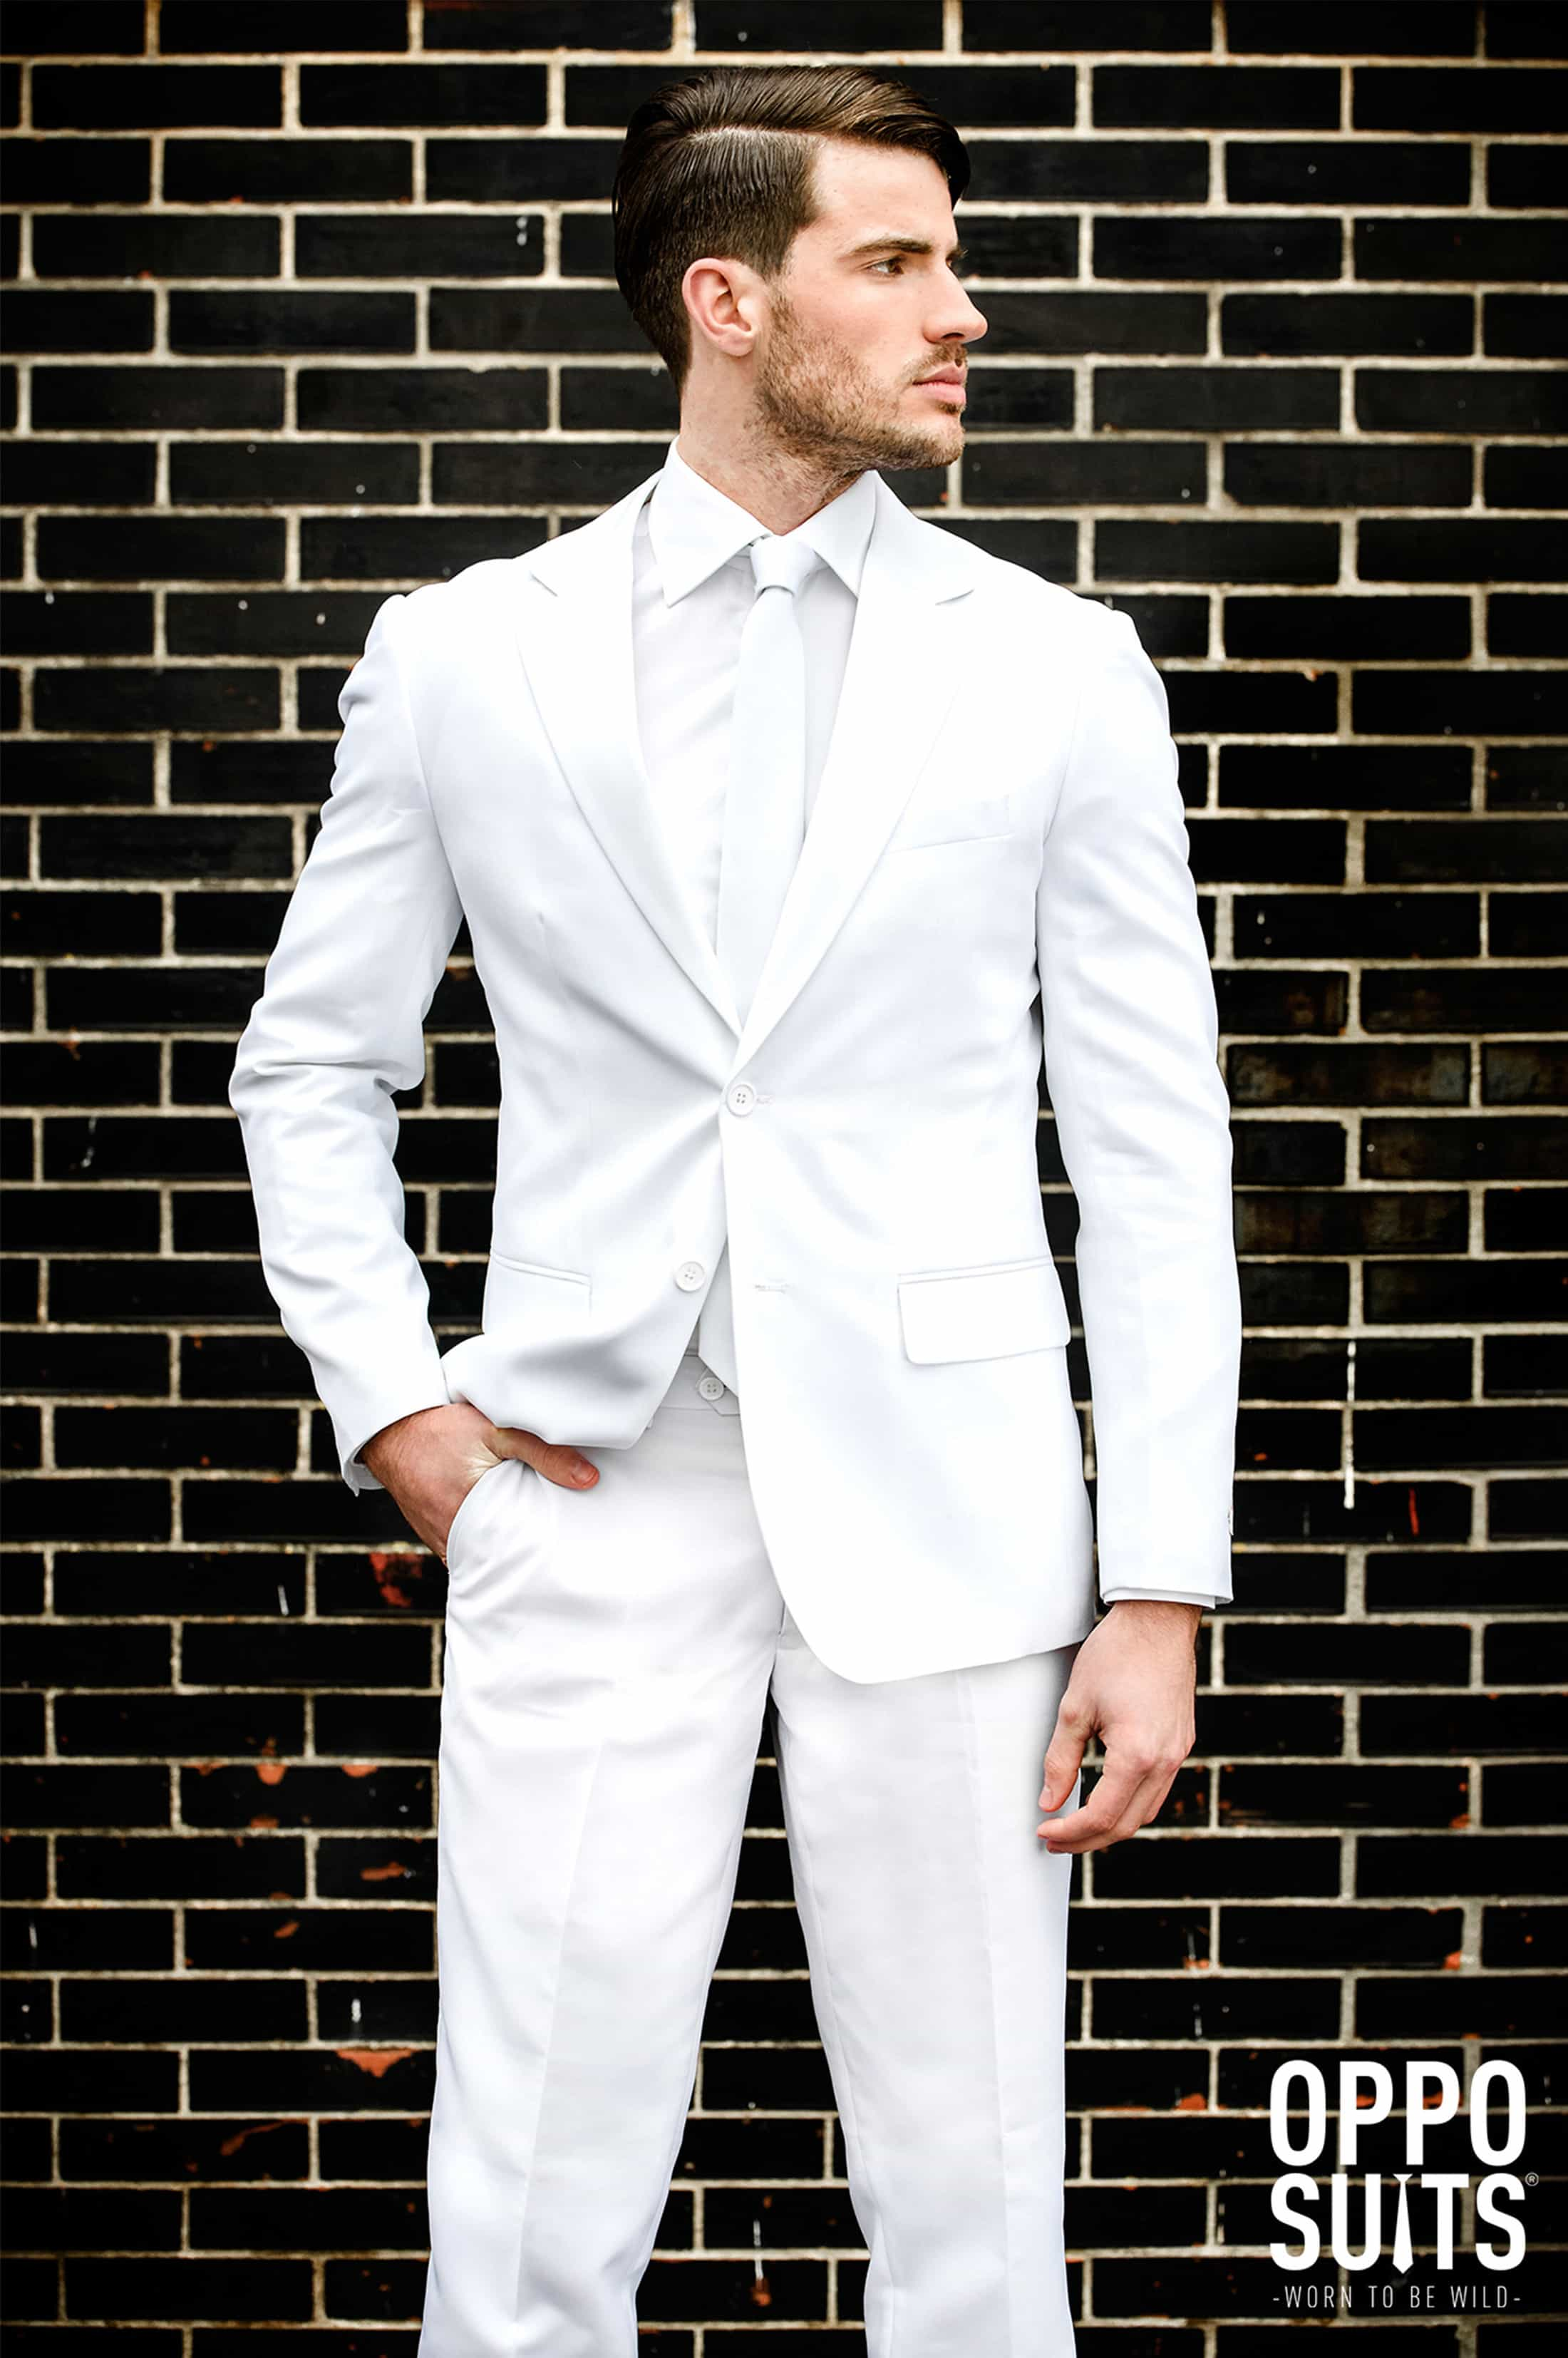 OppoSuits White Knight Suit foto 2